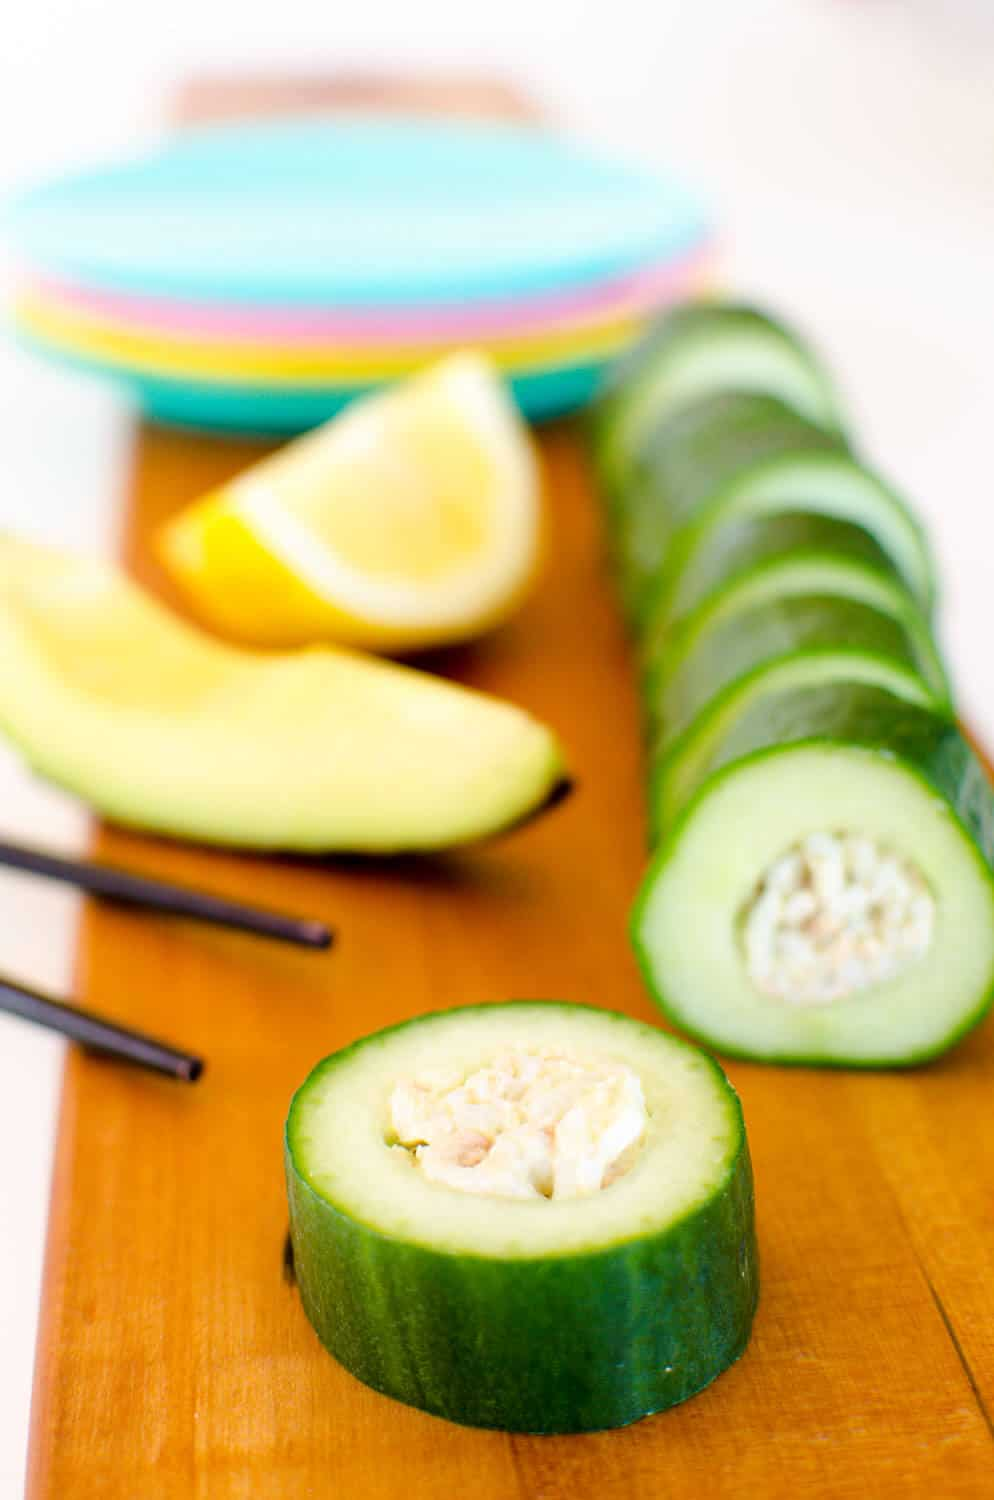 Pieces of cucumber sushi on a wooden board with a set of chopsticks